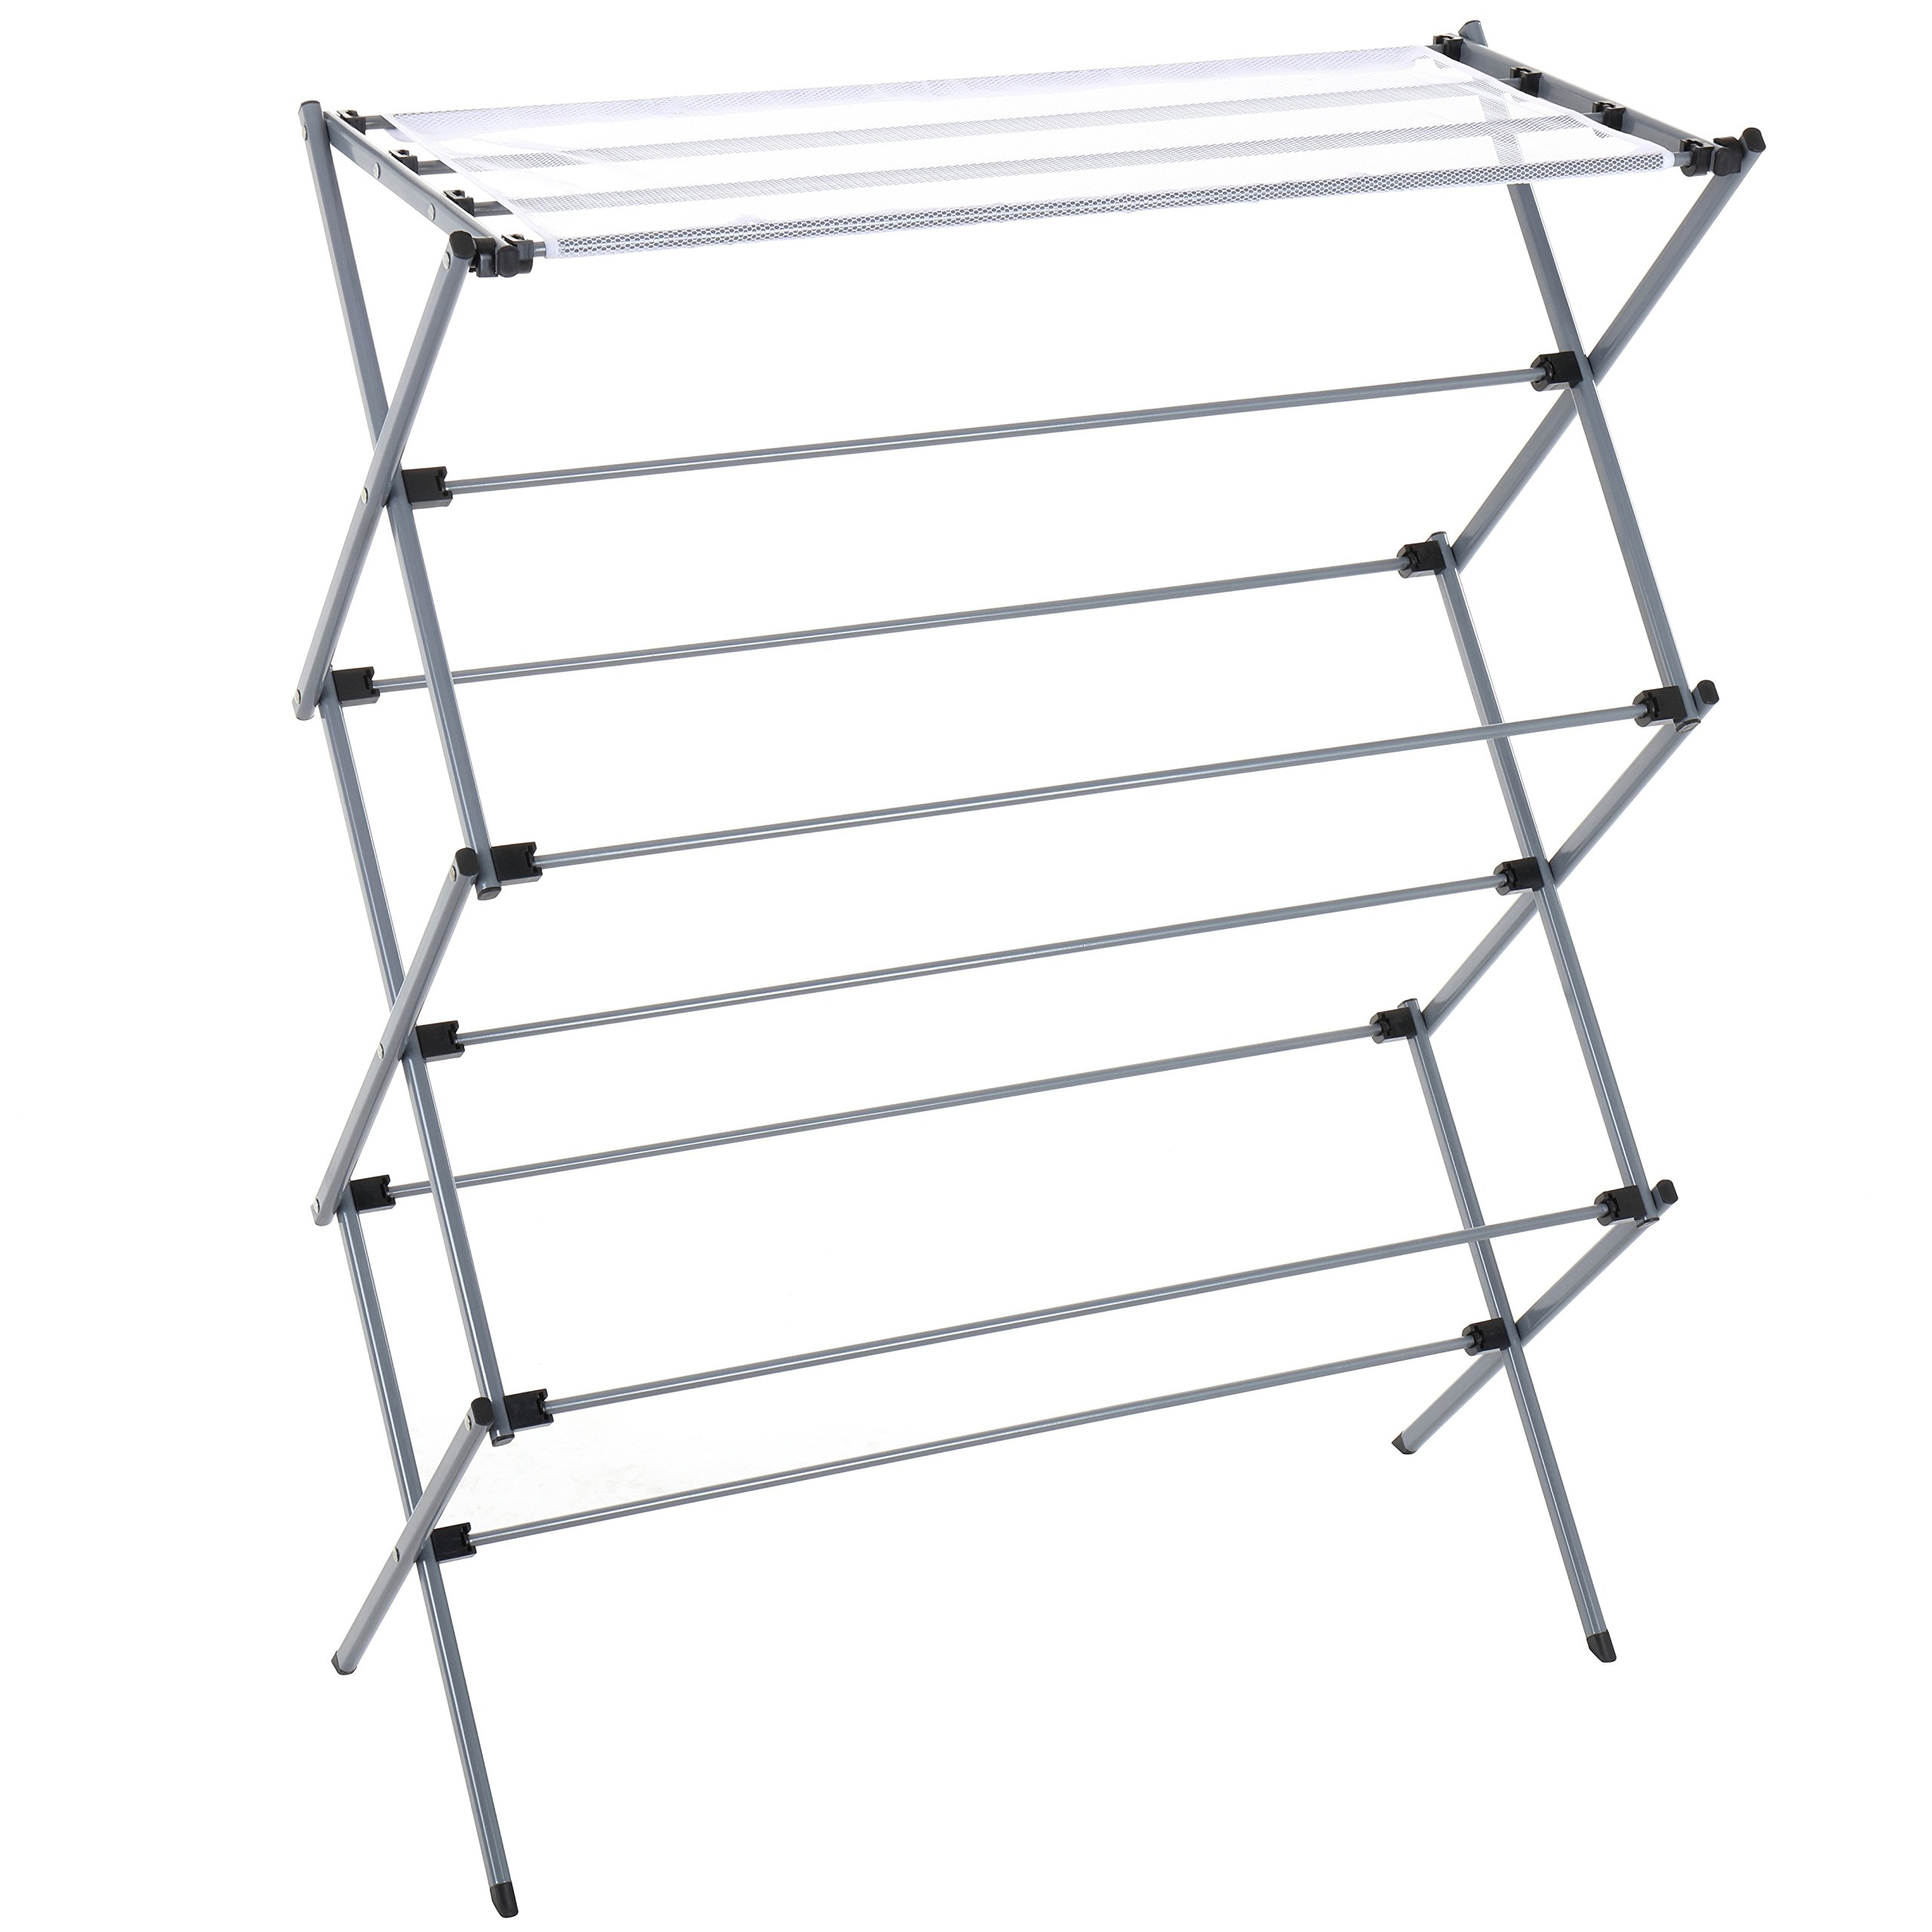 Finnhomy Oversize Folding Clothes Drying Rack Clothes Dryer for Laundry and Home Rust-Resistant, 45.5 Inch